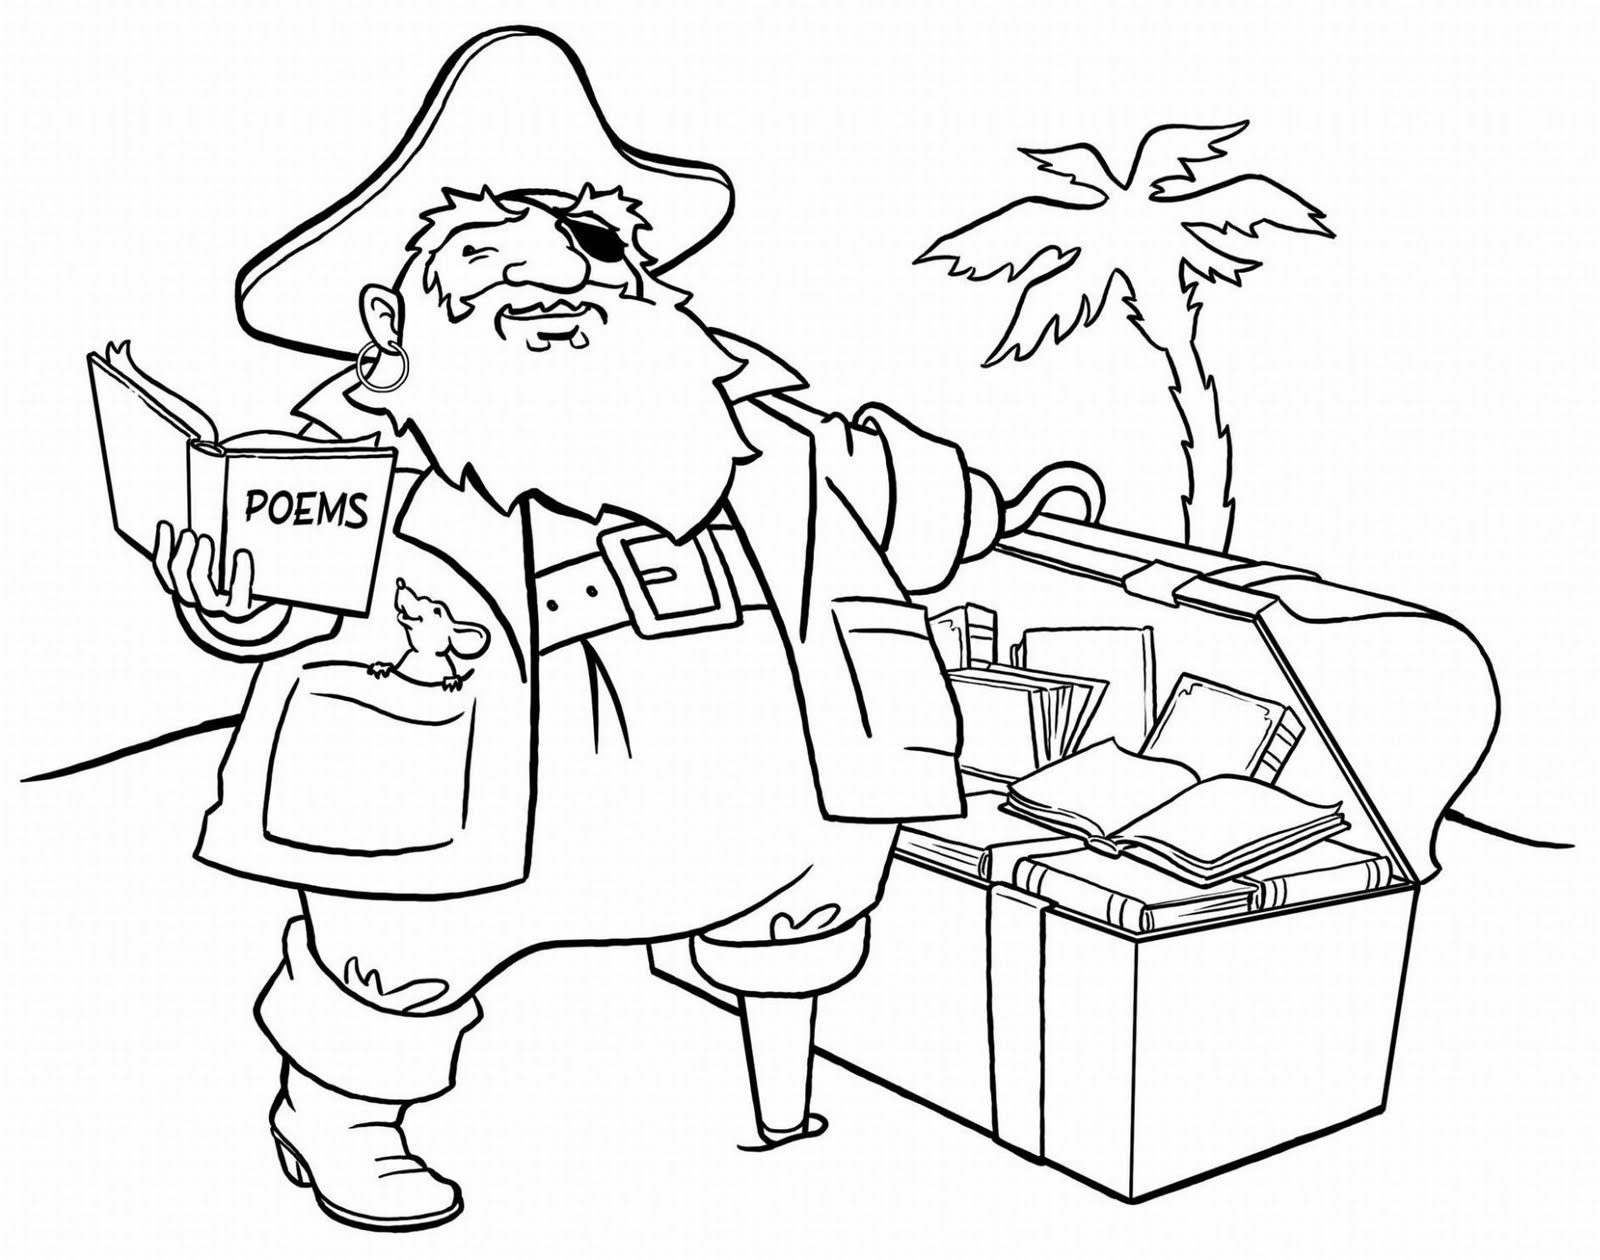 pirate images to color pirate colouring pages for kids in the playroom images color pirate to